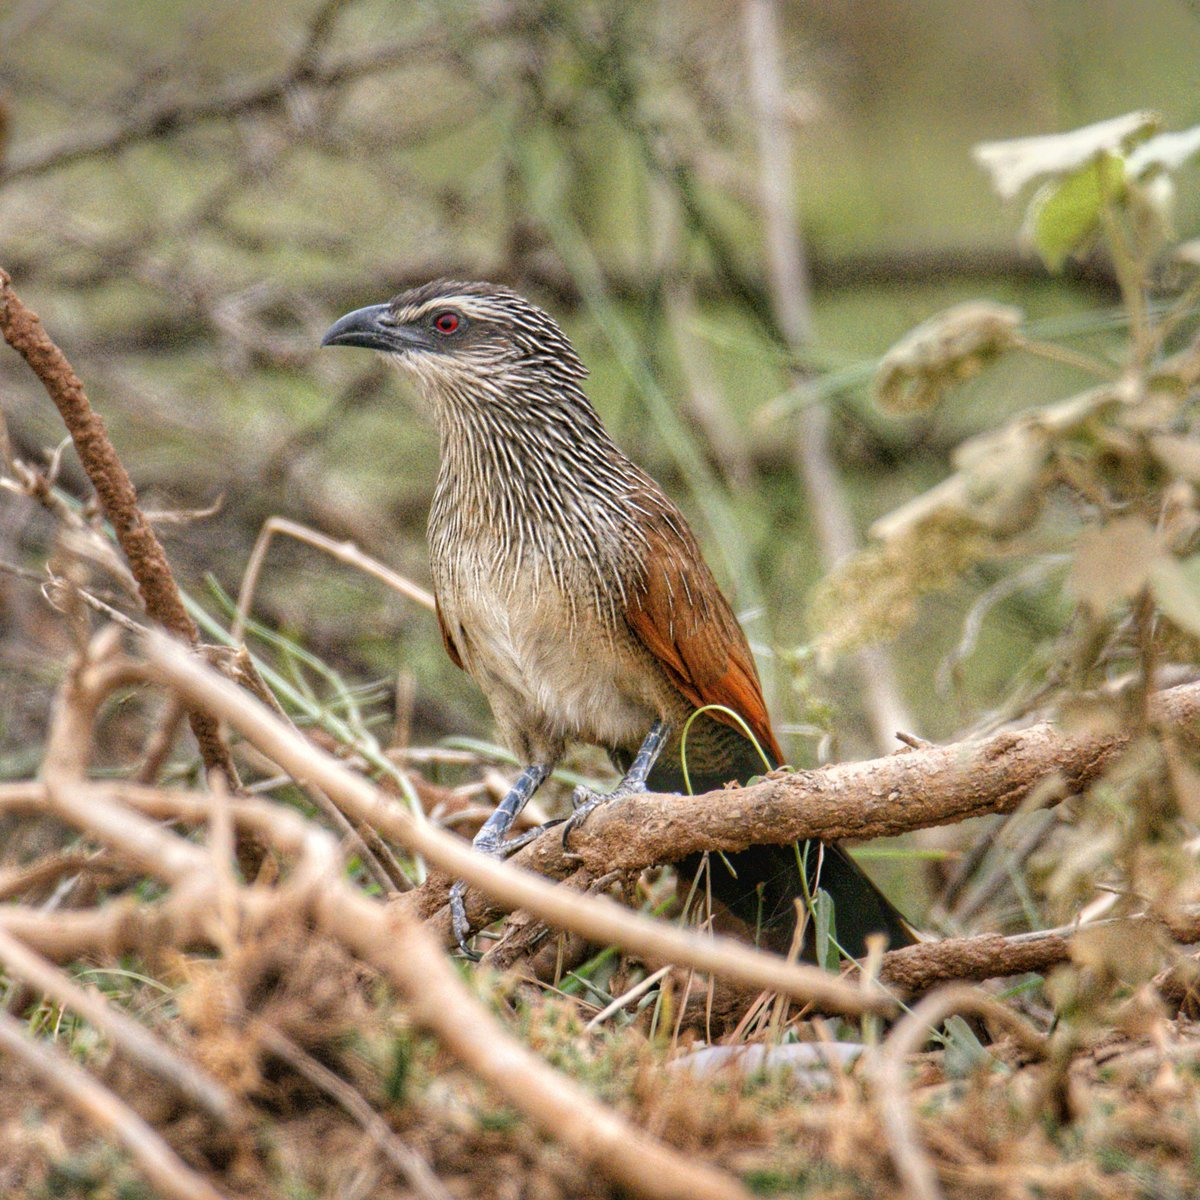 White Browed Coucal Arabic: كوكال أبيض الحاجب  Location: #Faifa #Jizan #Jazan #SaudiArabia الموقع: #فيفا #جيزان #جازان #السعودية  #birds #wildlife #naturelovers #photography #photographers #amazing #traveling #travelphotography #photo #ksa #beautiful @SaudiMagazine @IASArabia https://t.co/p4u9fHDG05